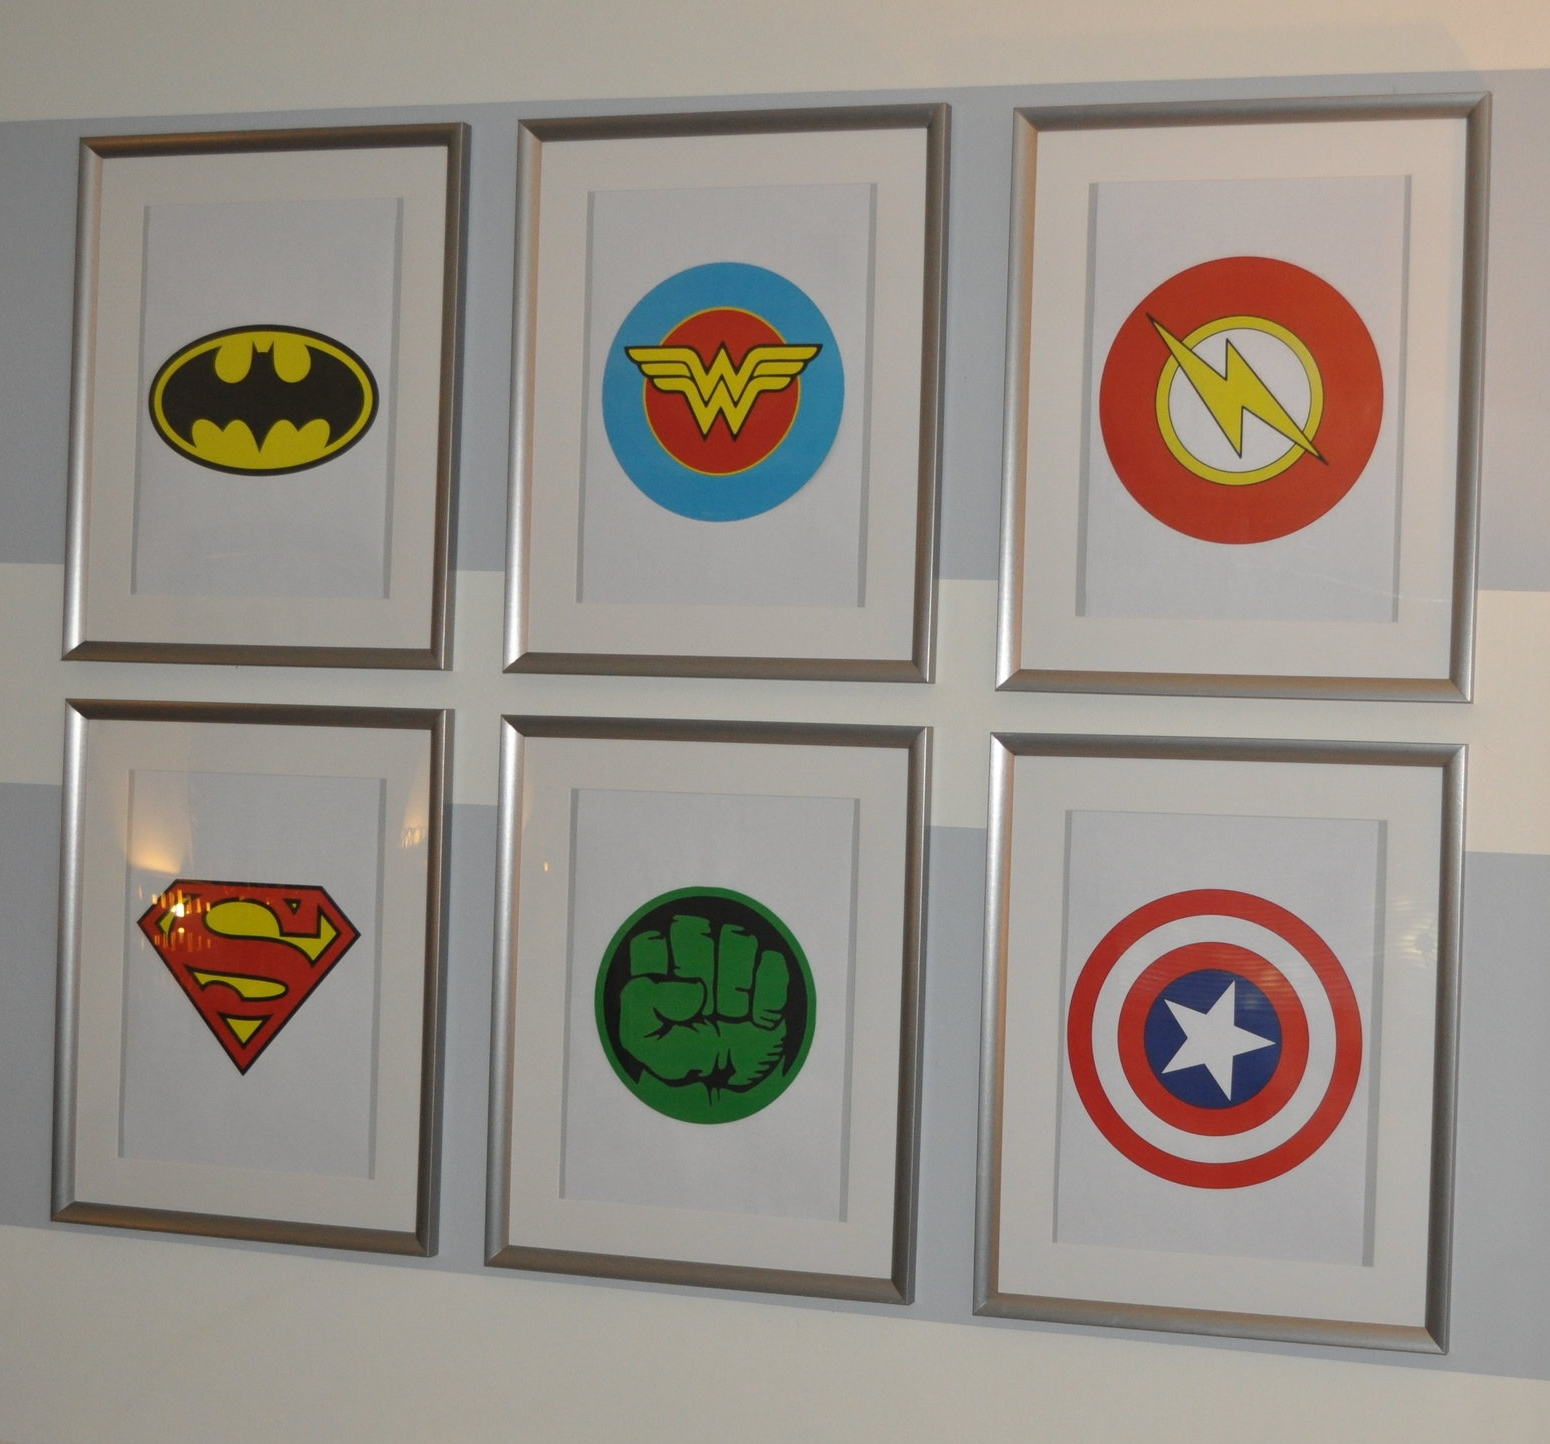 Not exactly the artwork of my dreams, but at least the frames were hung!